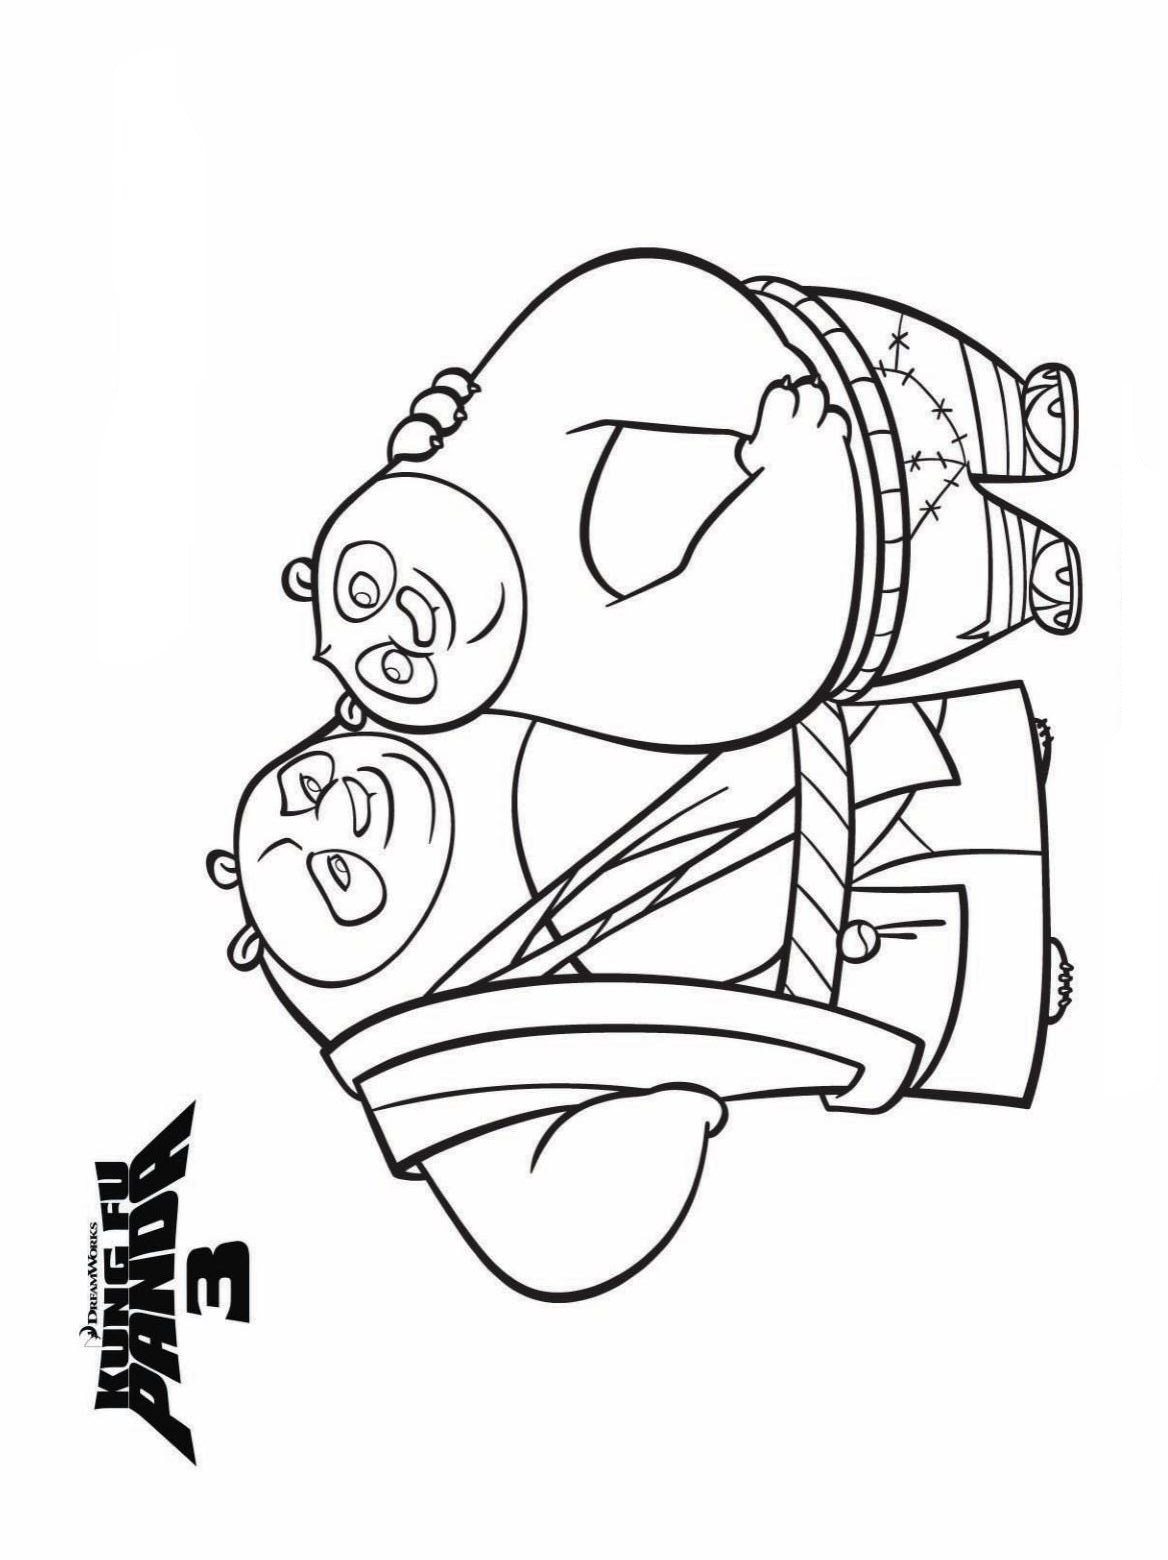 Kung Fu Panda Coloring Pages Kidsnfun  7 Coloring Pages Of Kung Fu Panda 3